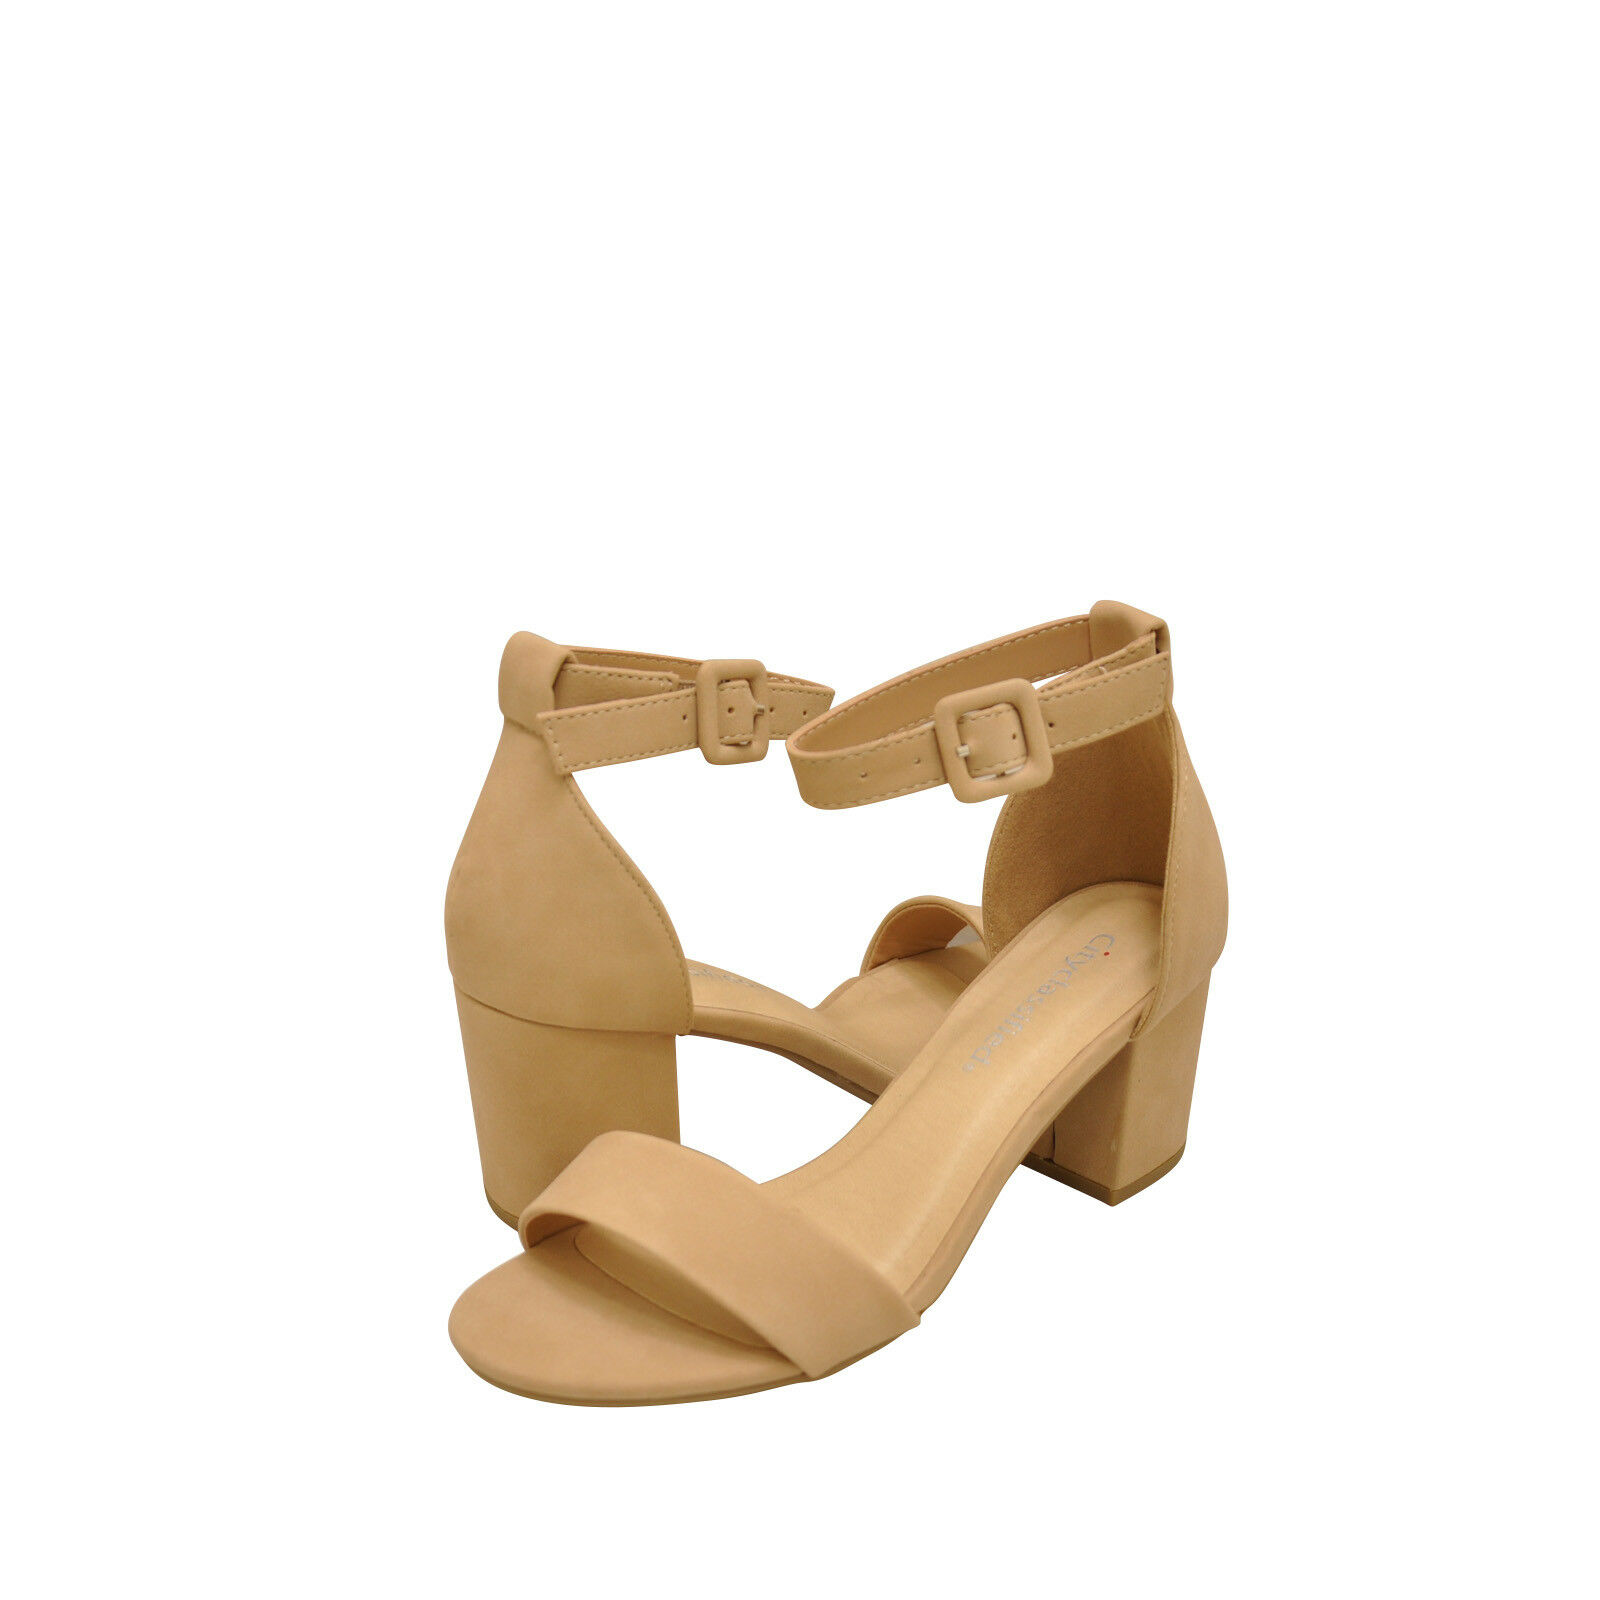 Women's shoes City Classified Cake S Open Toe Ankle Strap Heels Natural New